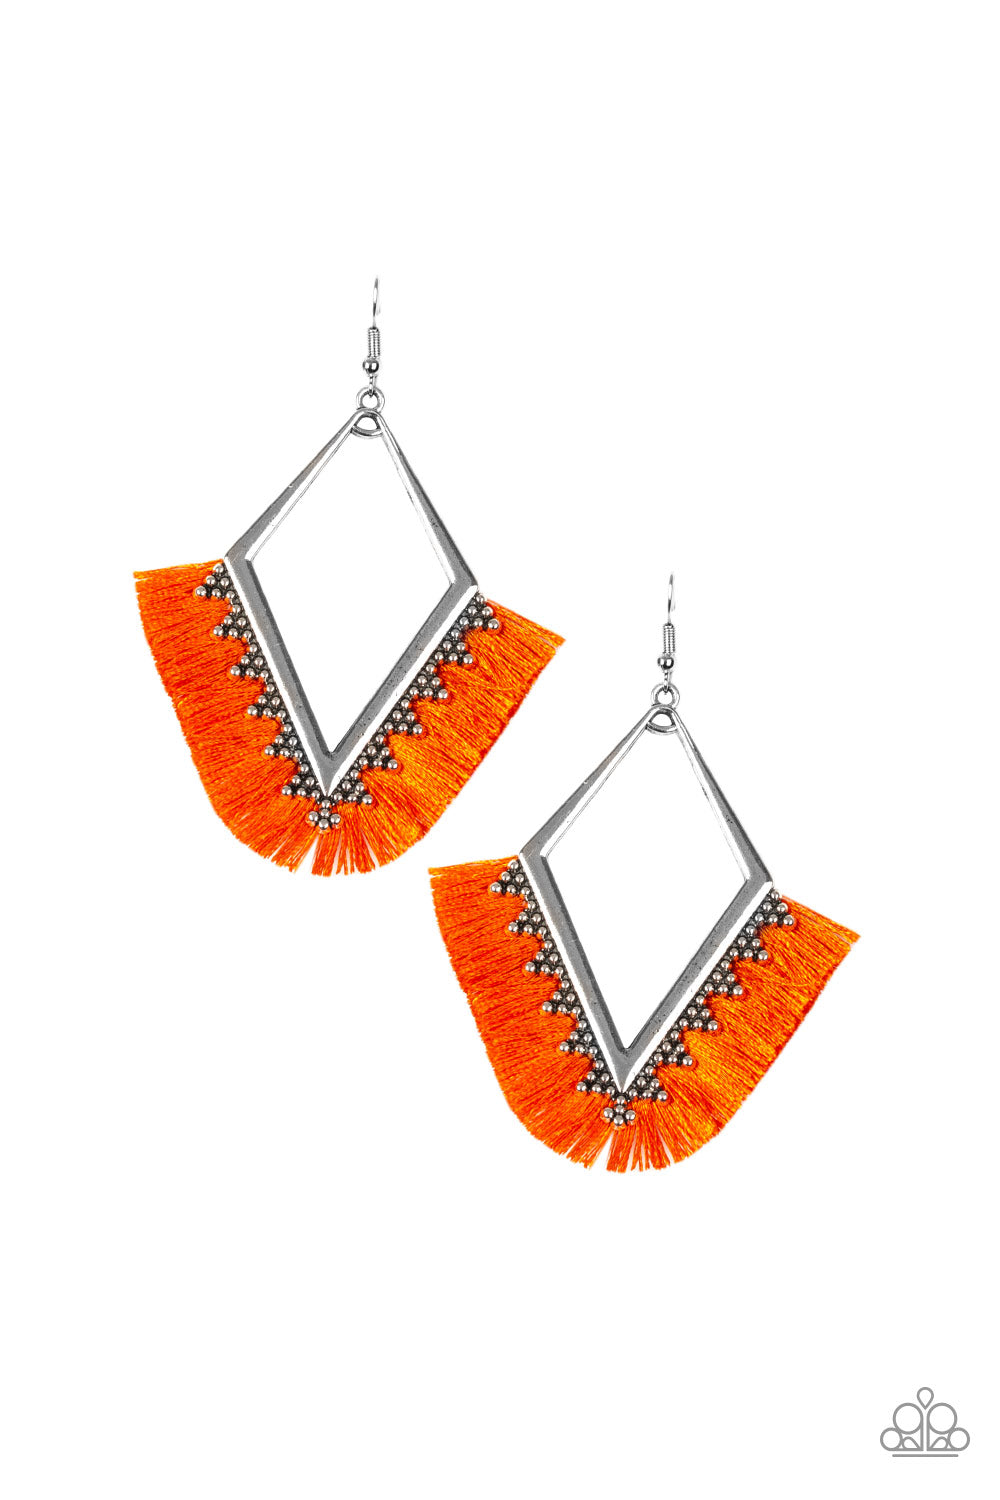 Paparazzi Accessories - When In Peru - Orange Earrings - JMJ Jewelry Collection